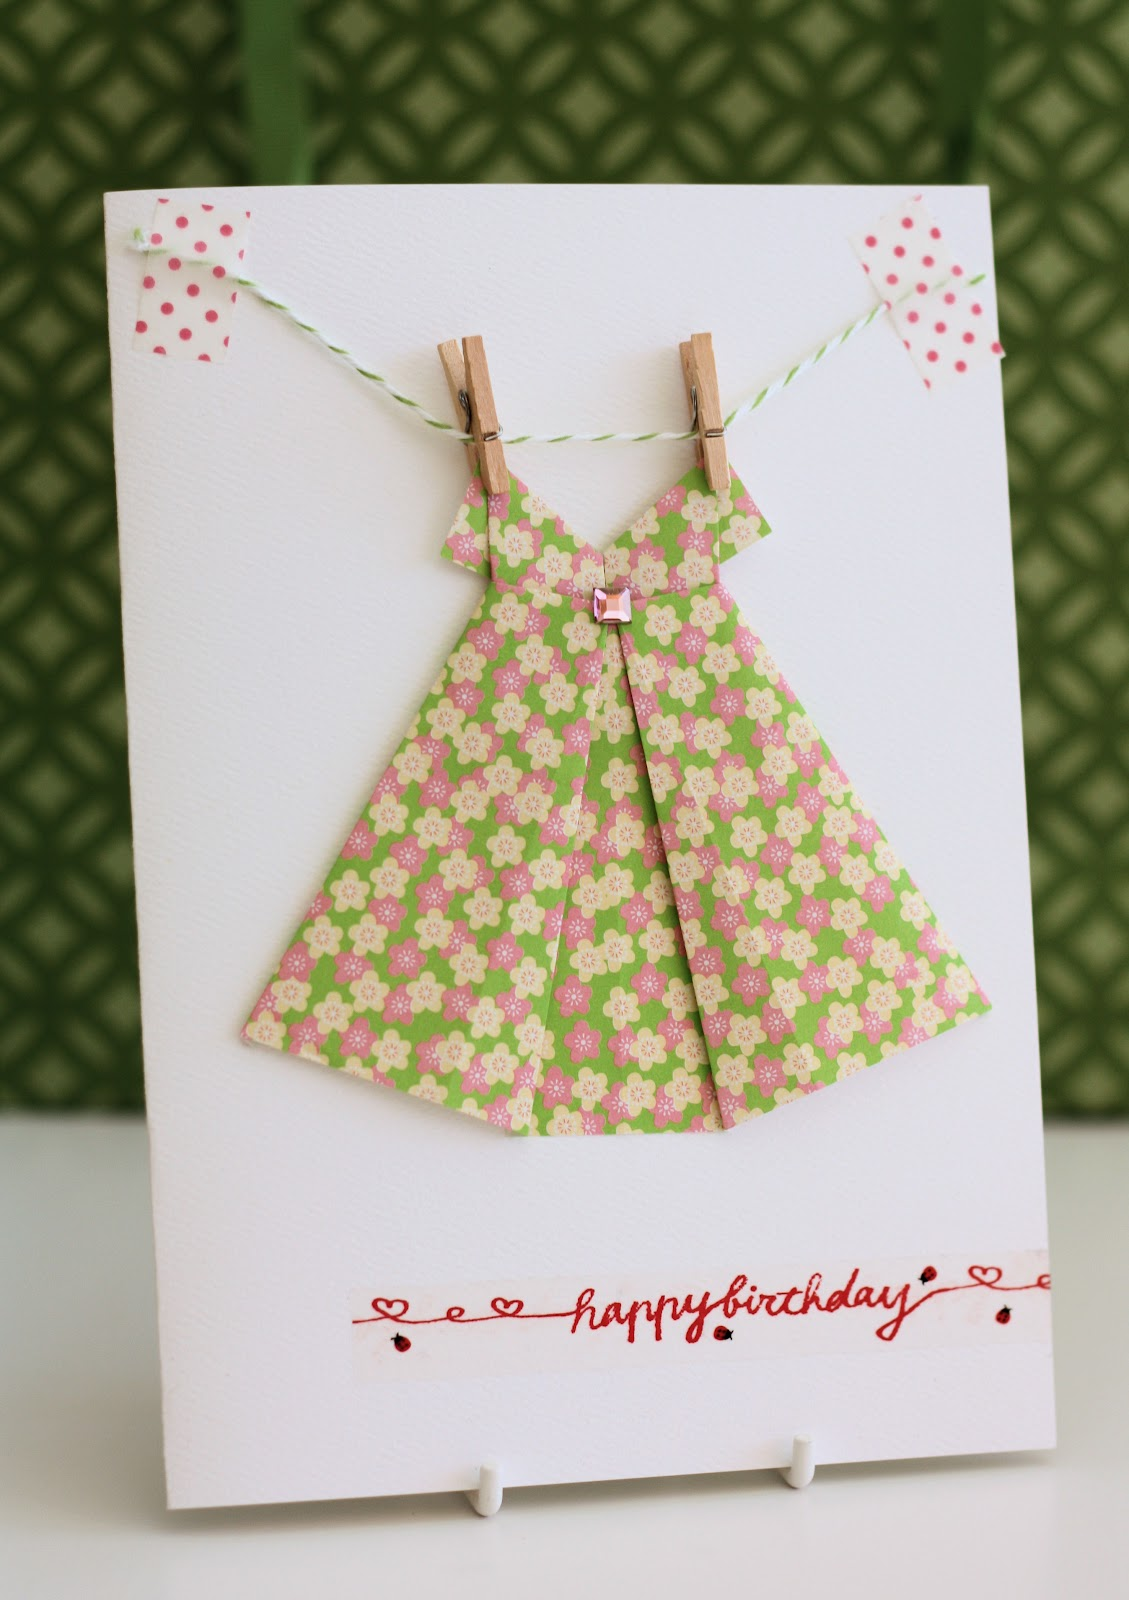 Origami dress card a spoonful of sugar to make an origami dress card for a special friends birthday there is a helpful utube video that guides you through the steps on folding the dress jeuxipadfo Choice Image